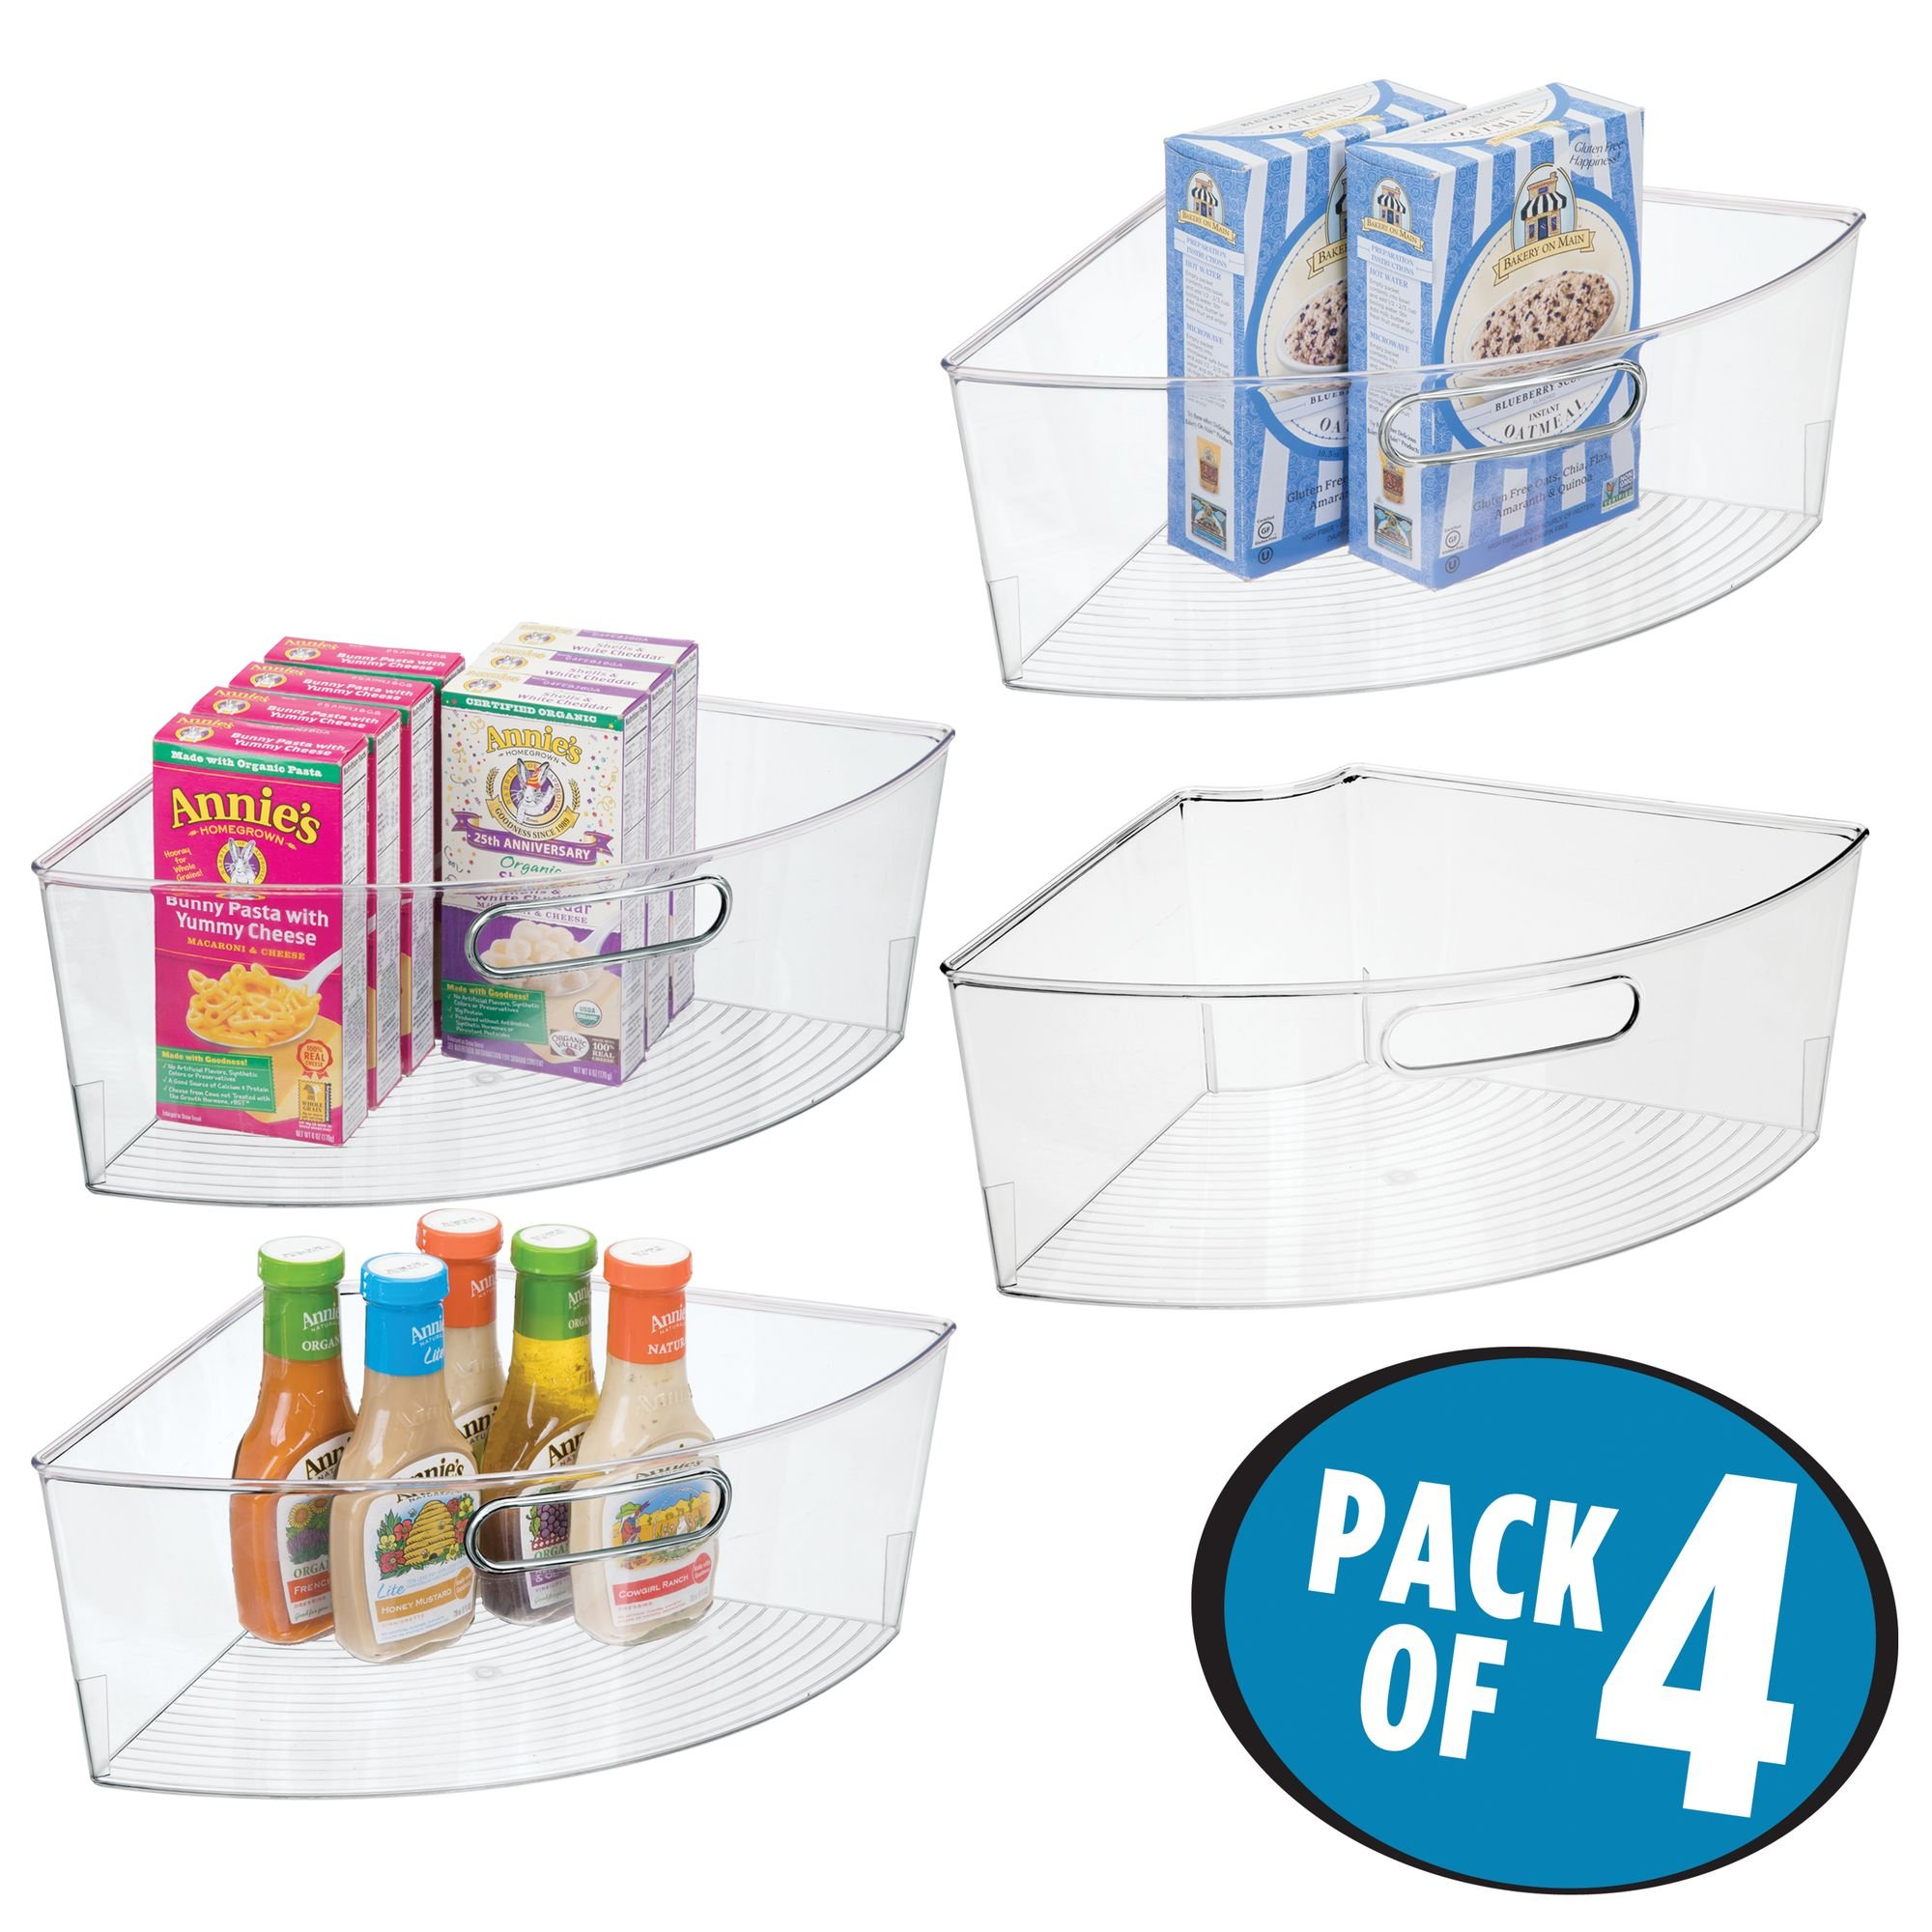 mDesign Kitchen Cabinet Plastic Lazy Susan Storage Organizer Bins with Front Handle - Large Pie-Shaped 1/4 Wedge, 6'' Deep Container - Food Safe, BPA Free - Set of 4, Clear by mDesign (Image #2)